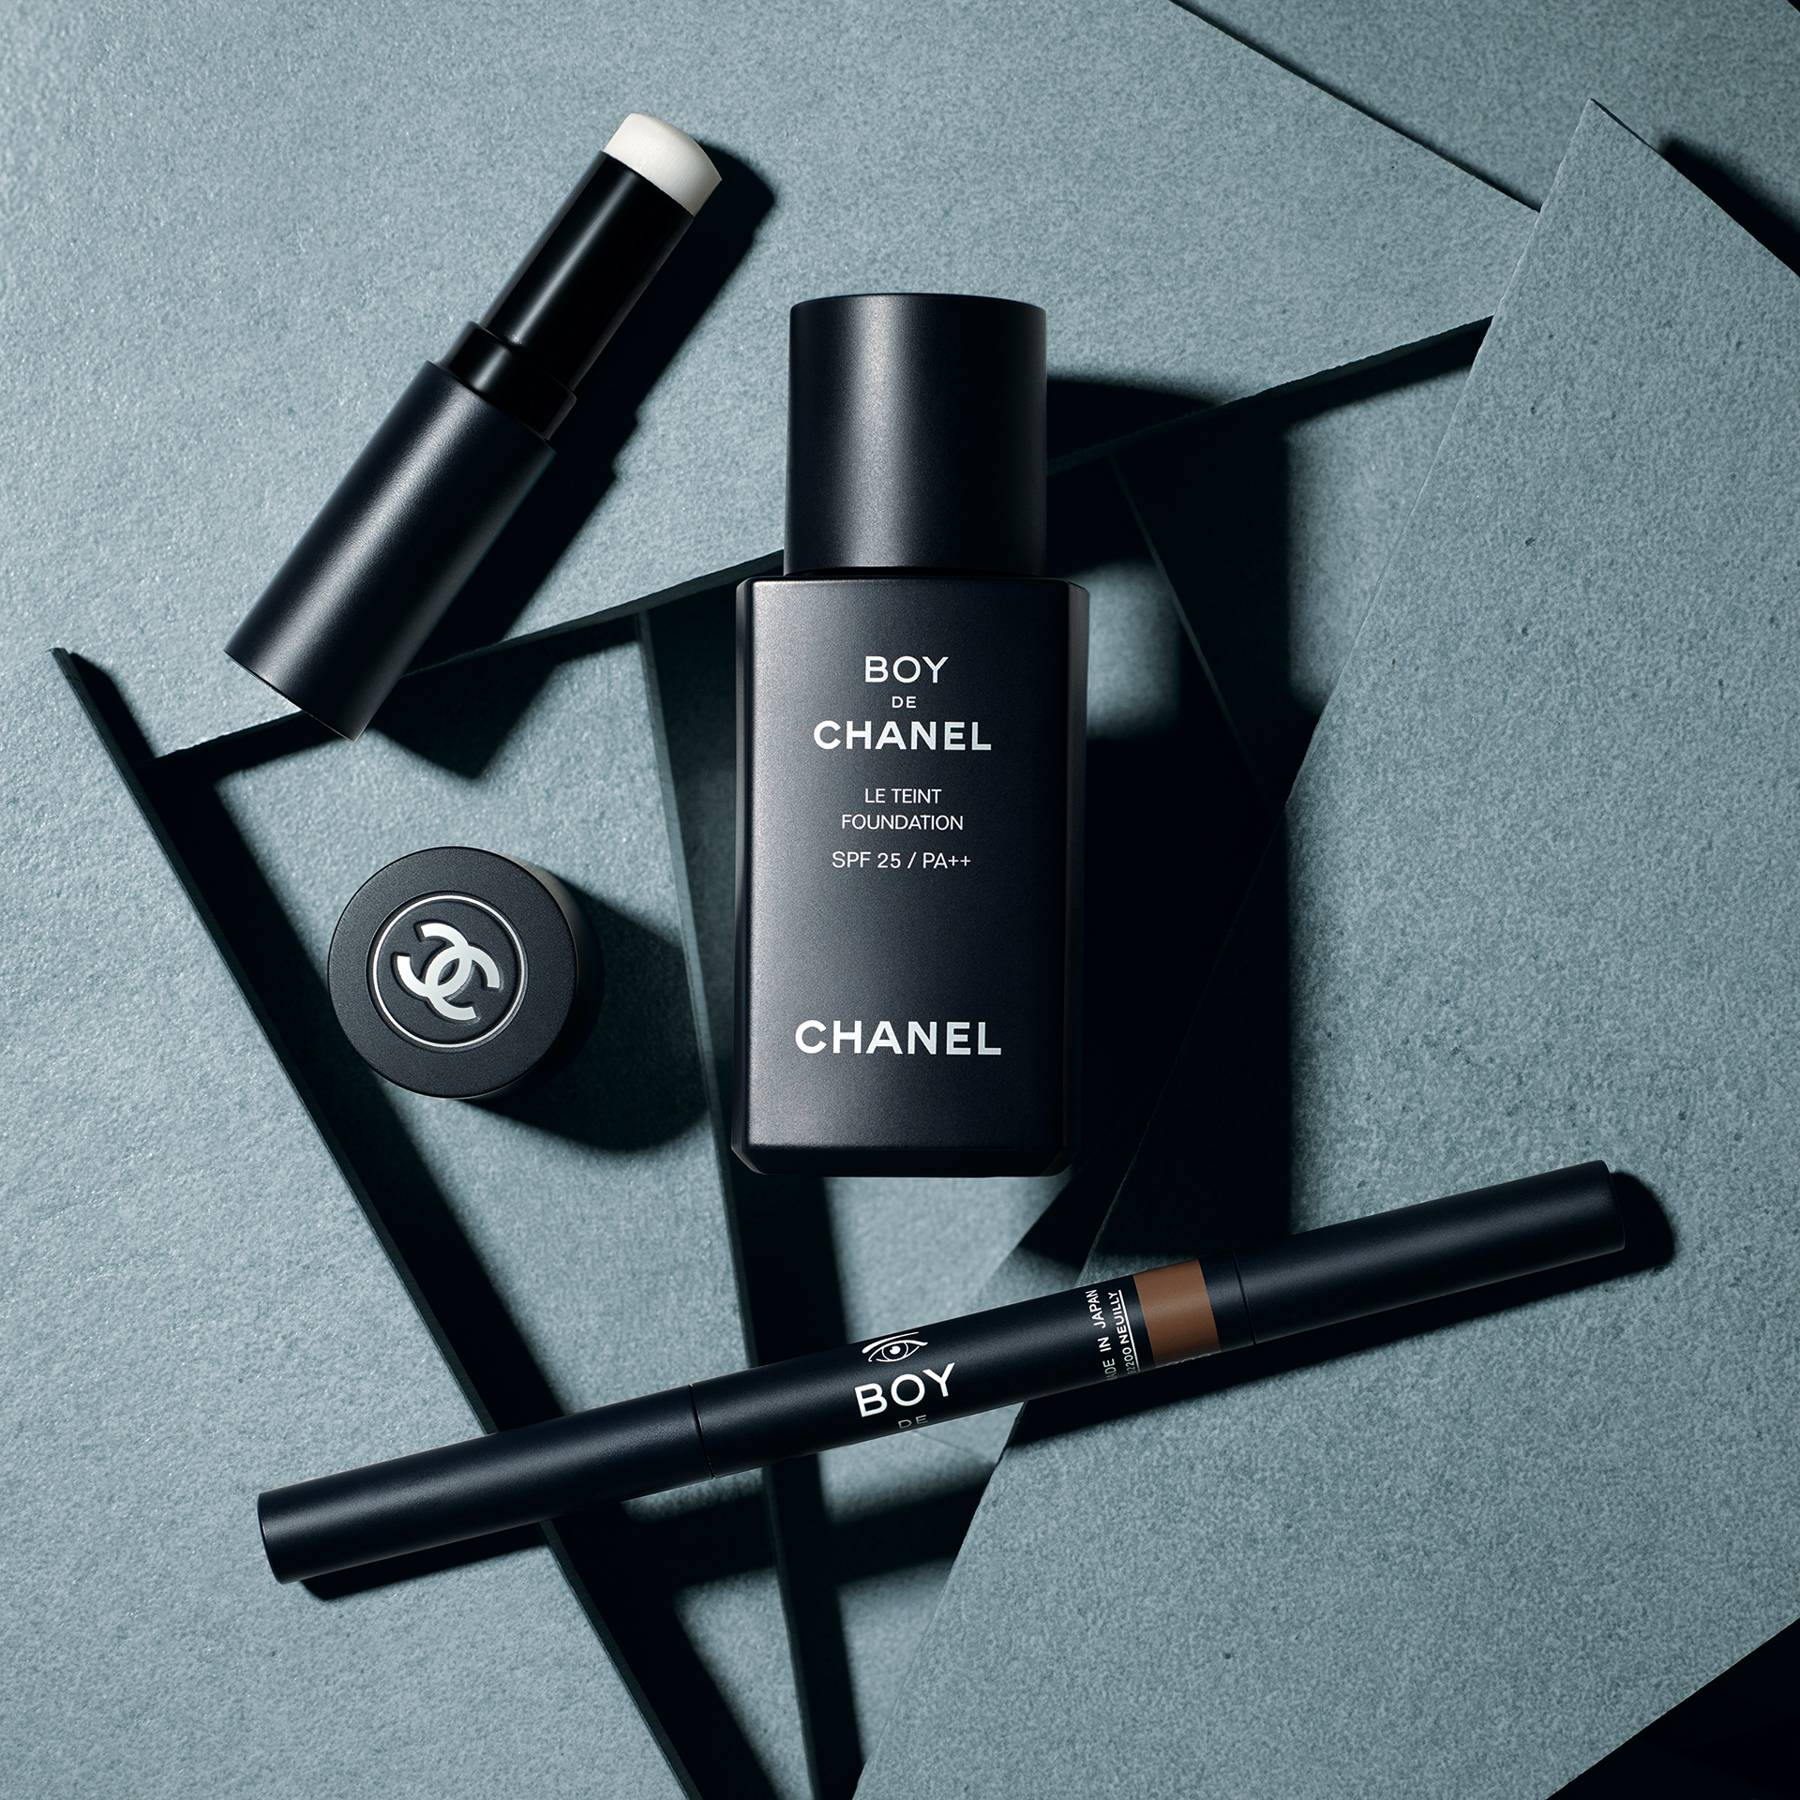 4a7f02ae378c Boy De Chanel: GQ puts the Chanel make up for men to the test | British GQ